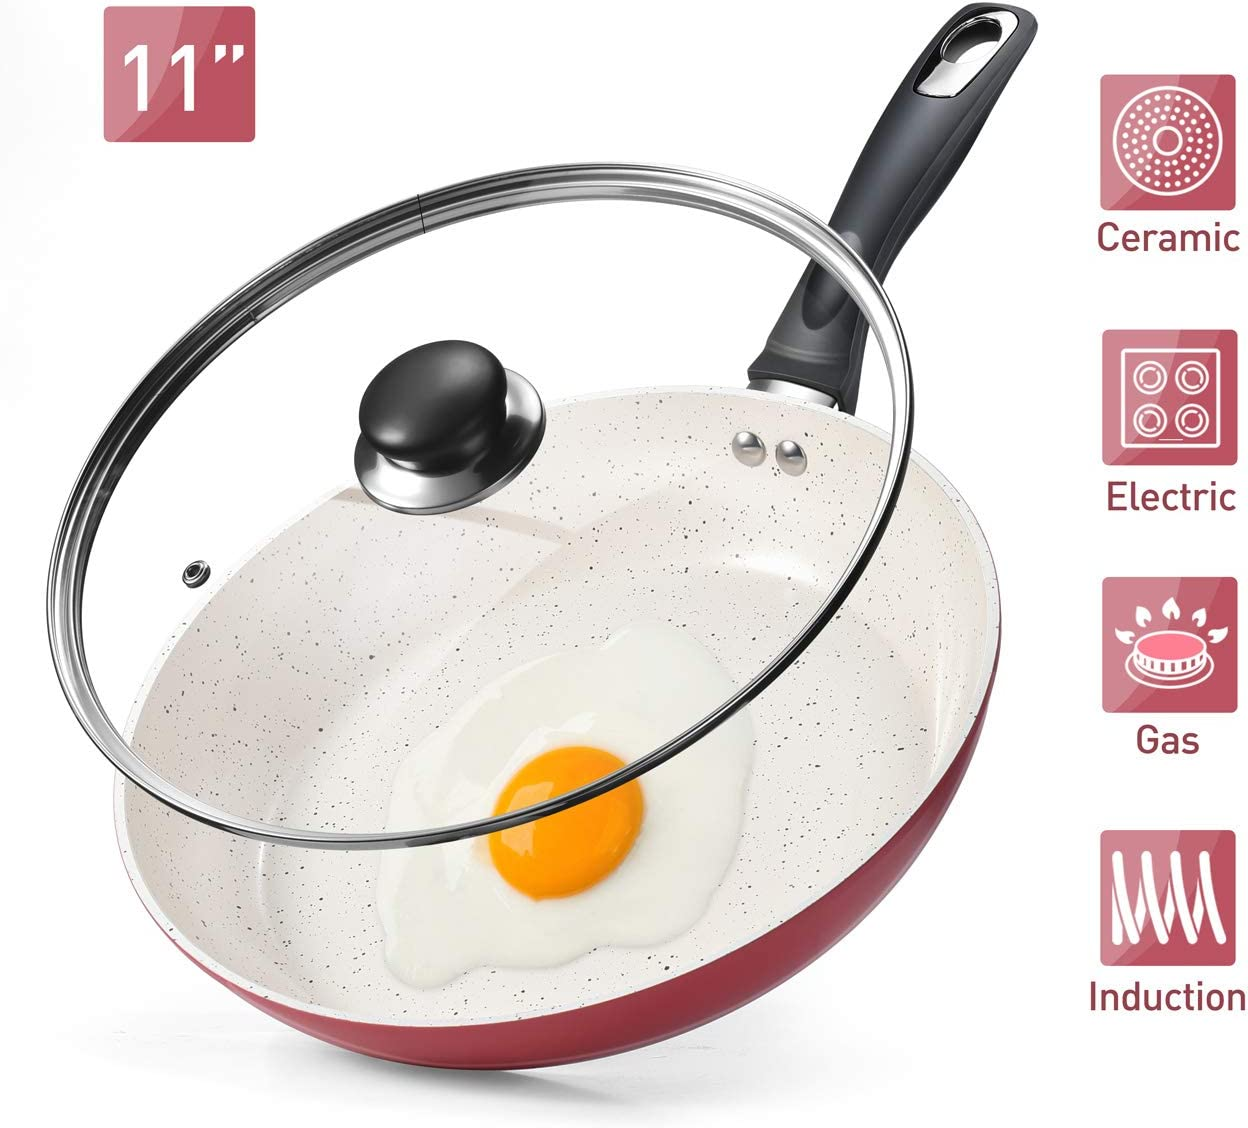 """11"""" White & Pink Ceramic Frying Pan with lid, Exquisitely Nonstick Fry Pan with Heat Insulation Handle, 100% APEO & PFOA-Free Ceramic Non-Stick Coating, Skillet Cookware, Ideal for Family"""